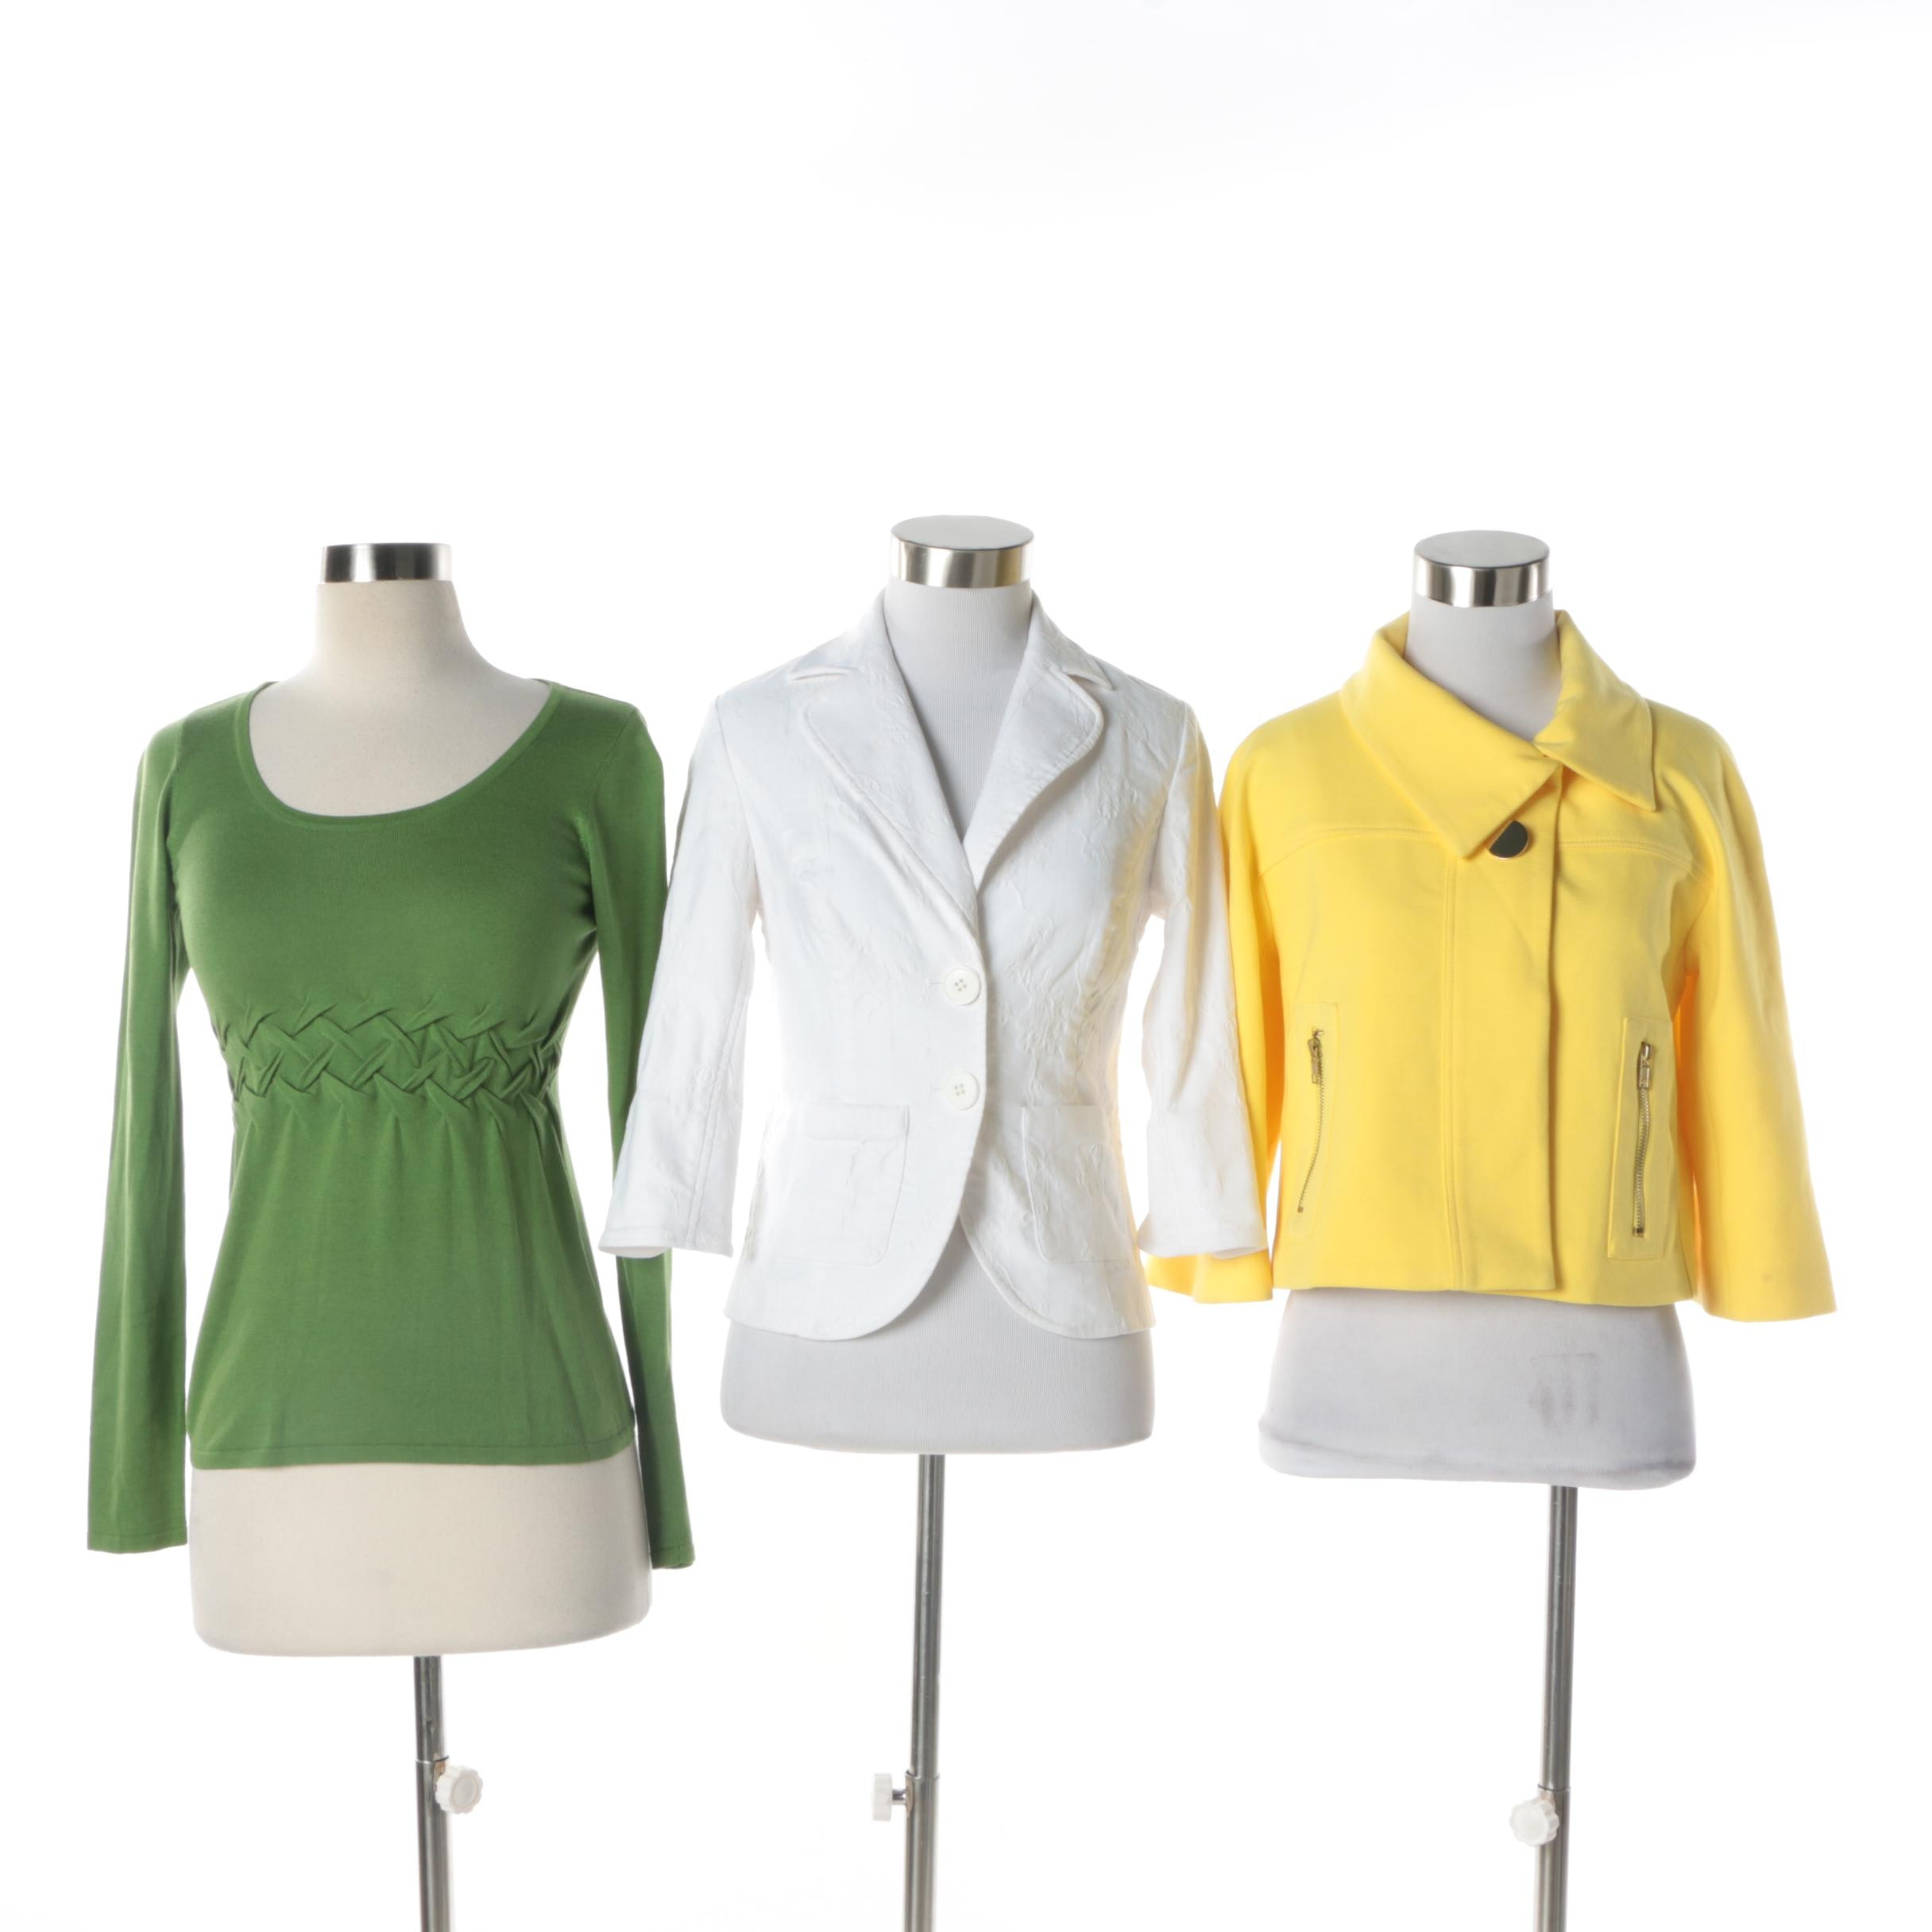 Women's Jackets and Top Including Etcetera